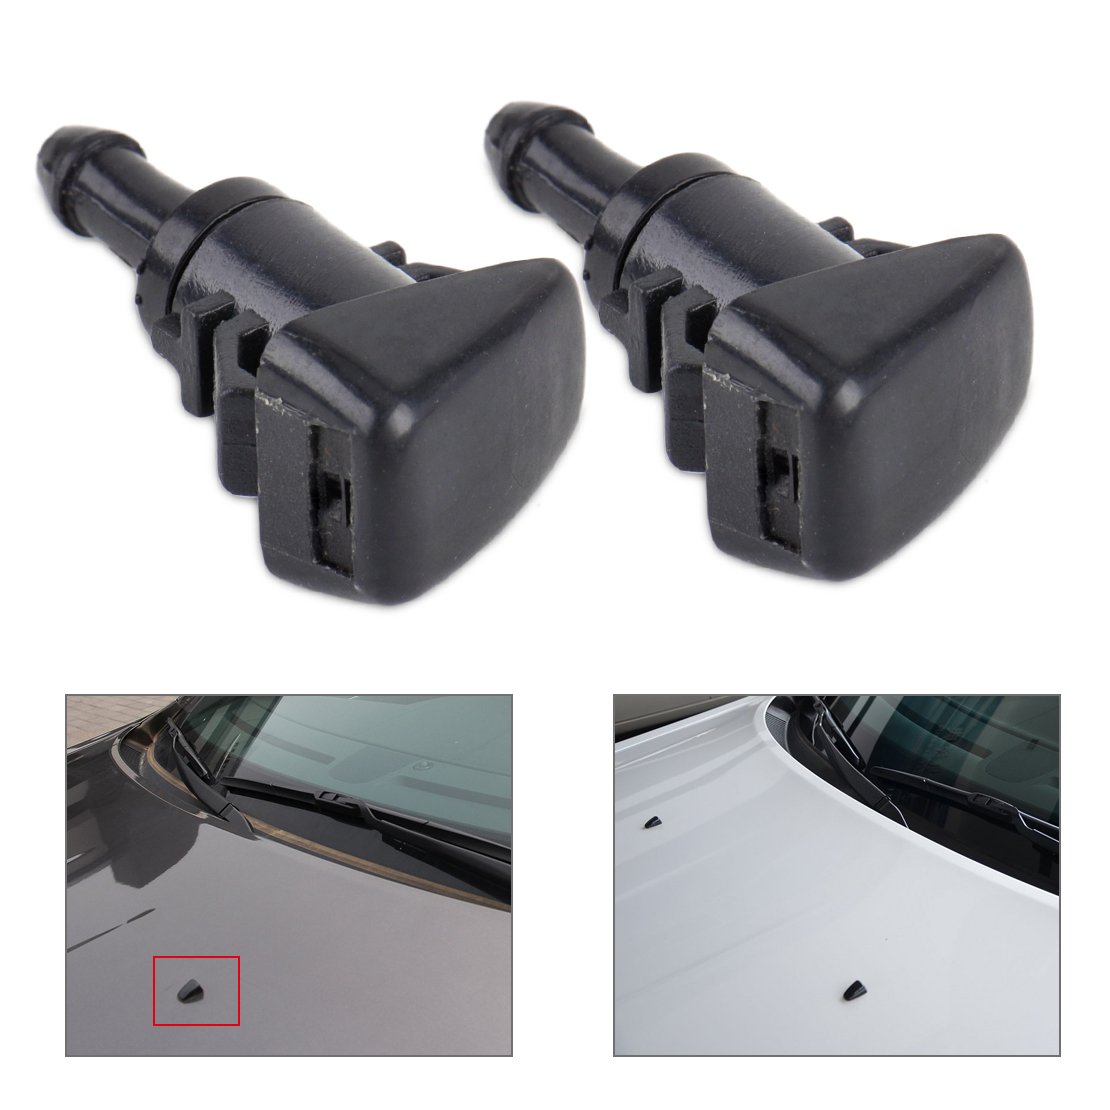 DWCX New 2Pcs Car 2 Hole Windshield Washer Wiper Water Spray Nozzle 47186 For Chrysler 300 Dodge Avenger Jeep Compass Ram 1500